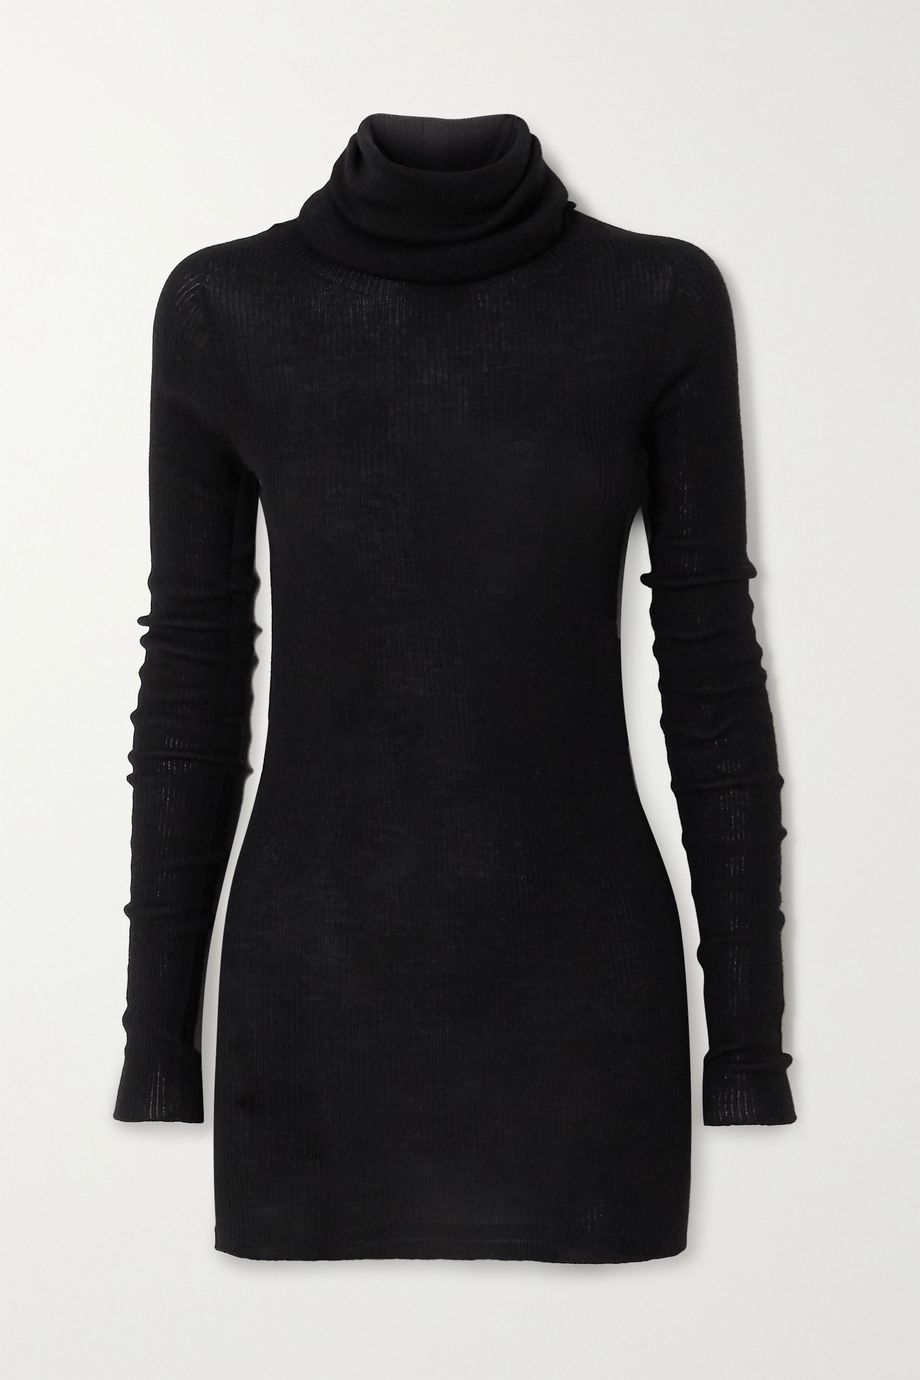 Rick Owens Ribbed wool turtleneck sweater